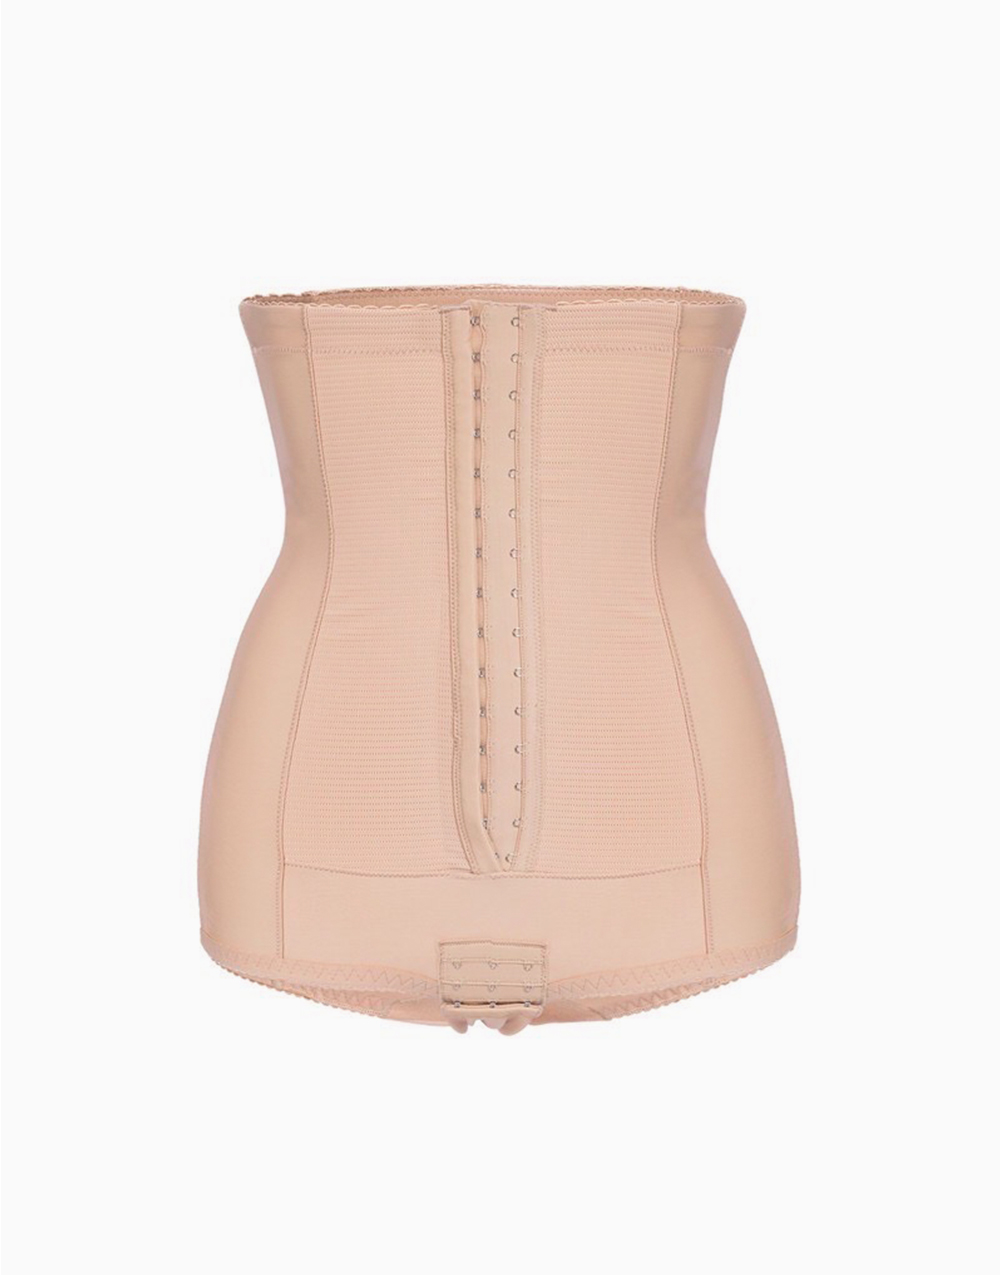 DIANNE Post Partum Recovery Shapewear - Nude by Shapewear Solutions | Small